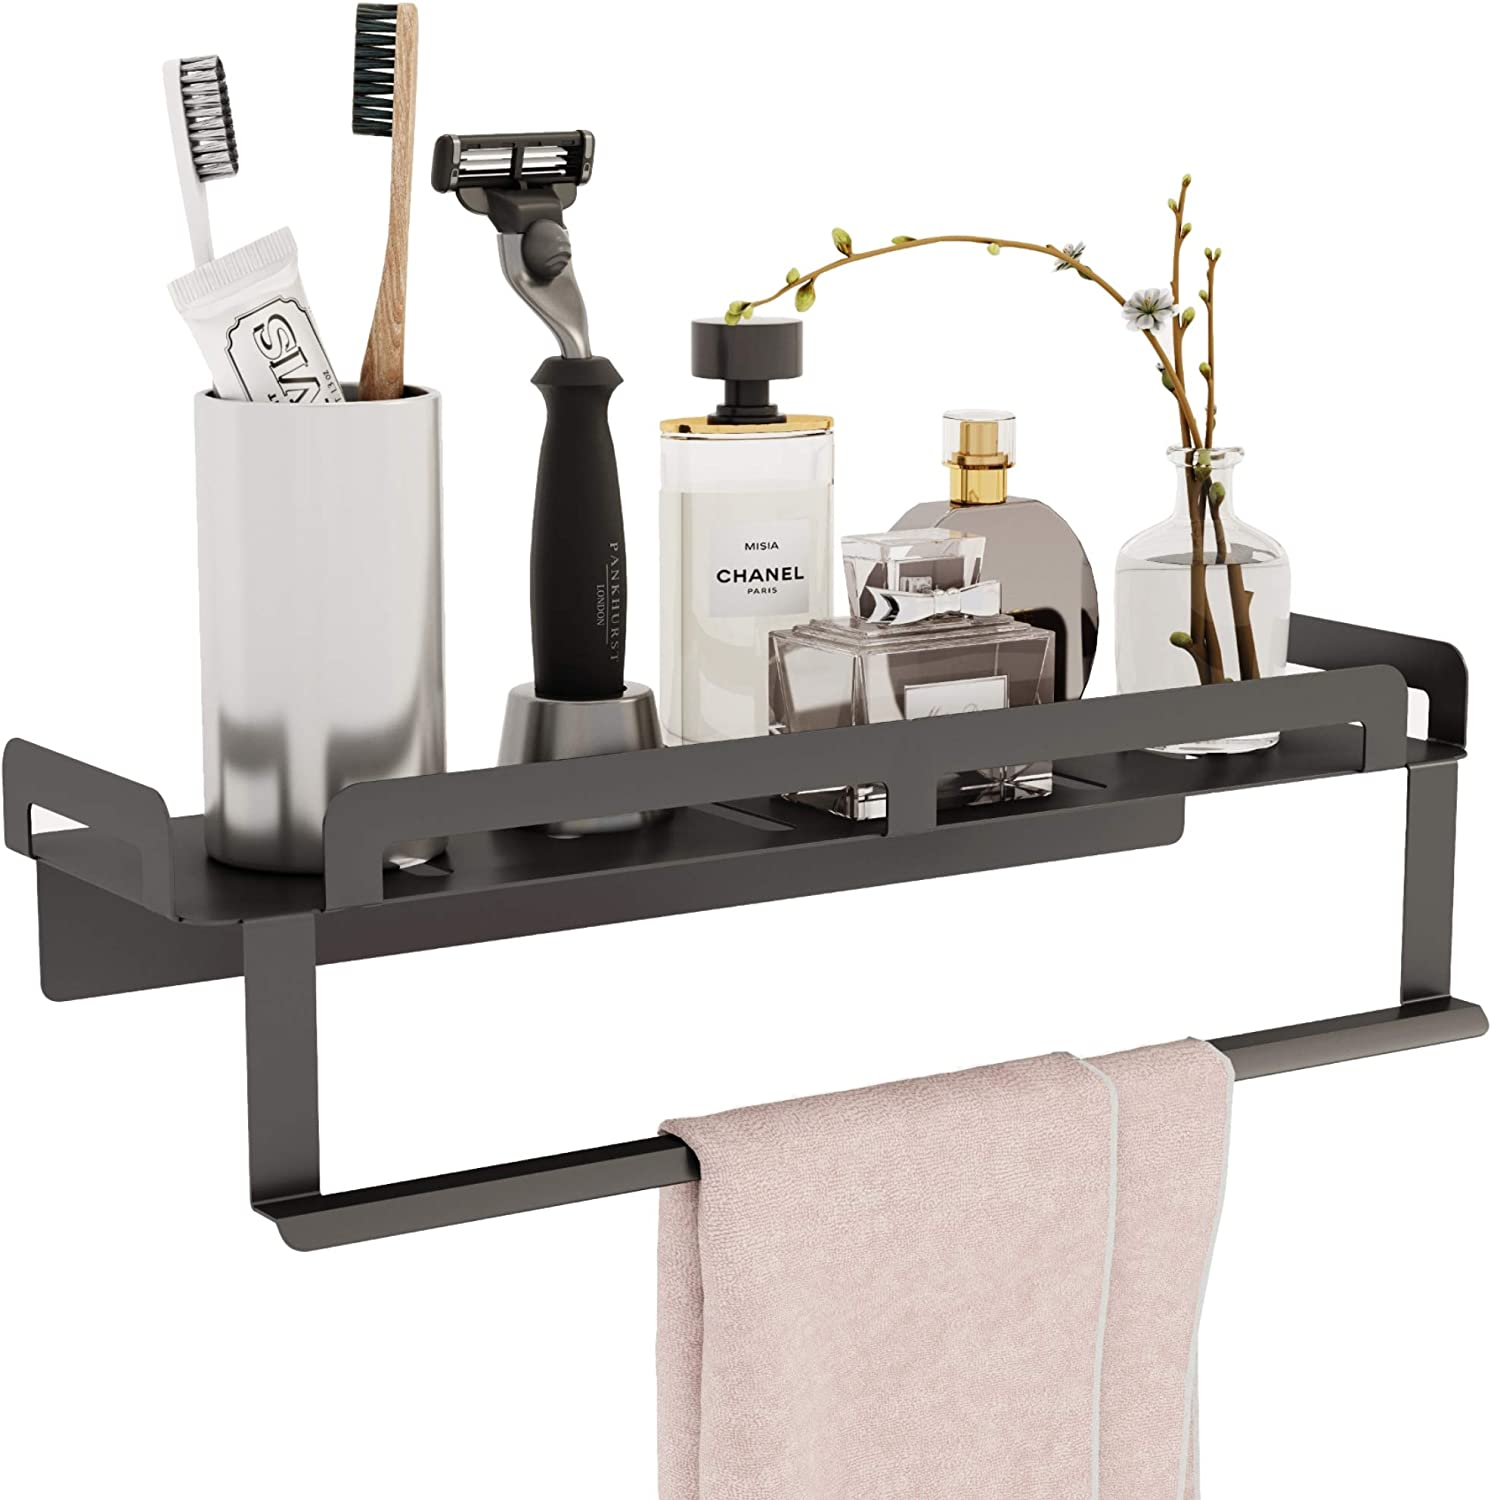 Amazon Com E Room Trend Bathroom Shelf With Towel Bar 15 7 Inches Extra Thick Floating Shelf Drain Design With Hanging Bar Wall Mounted With No Drilling Installation For Bathroom Toiletries Or Kitchen A025 Home